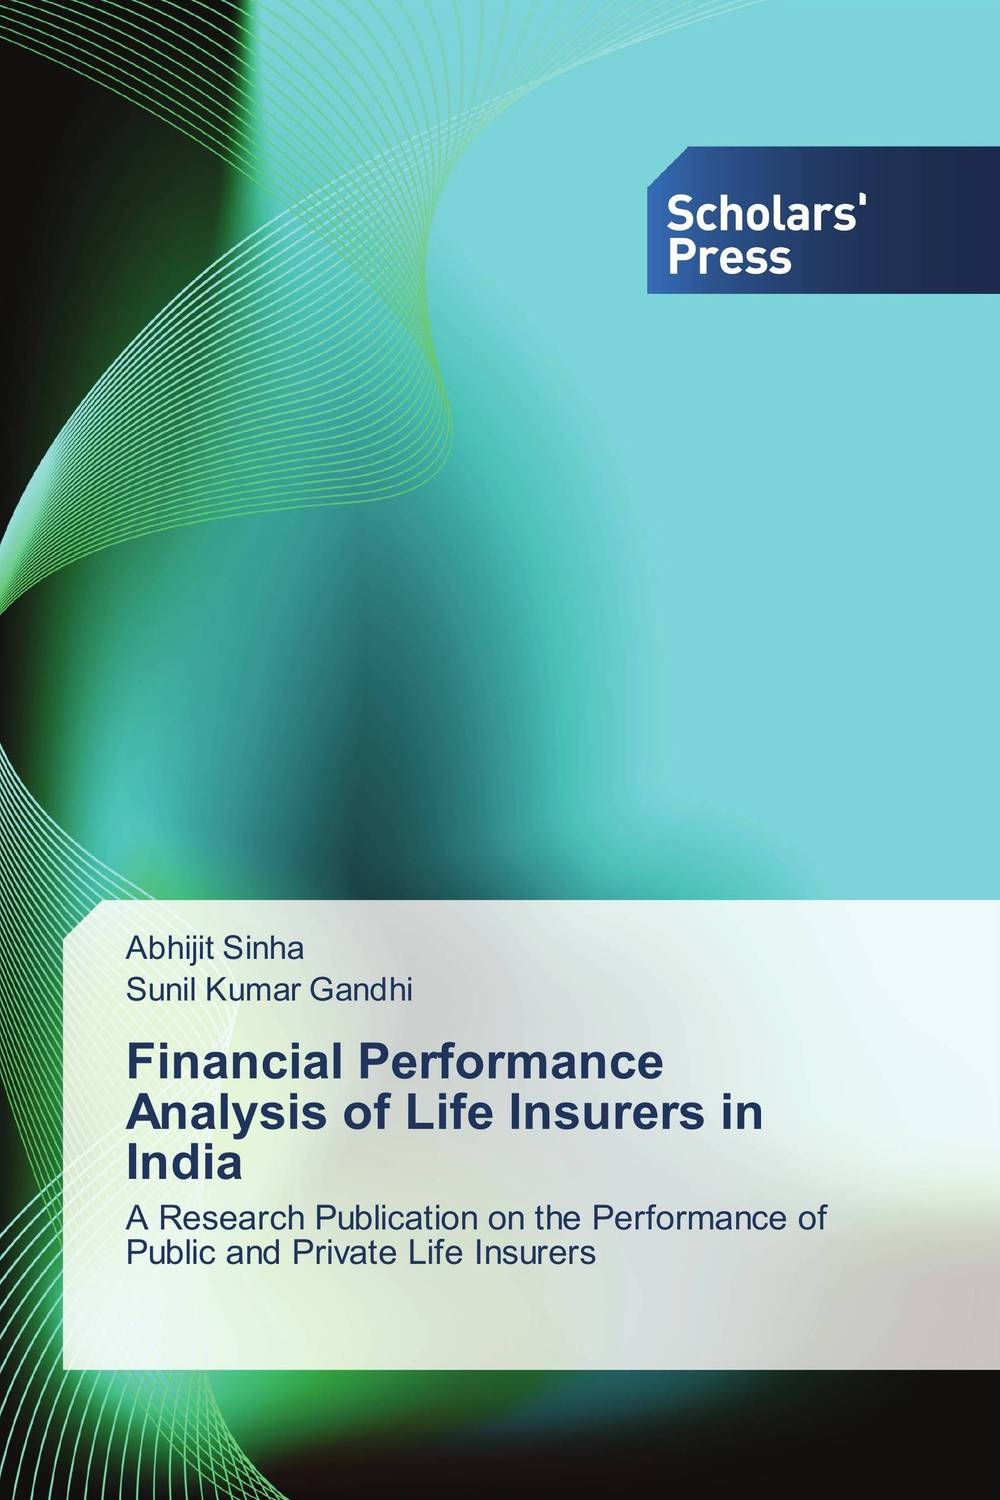 Financial Performance Analysis of Life Insurers in India financial performance analysis